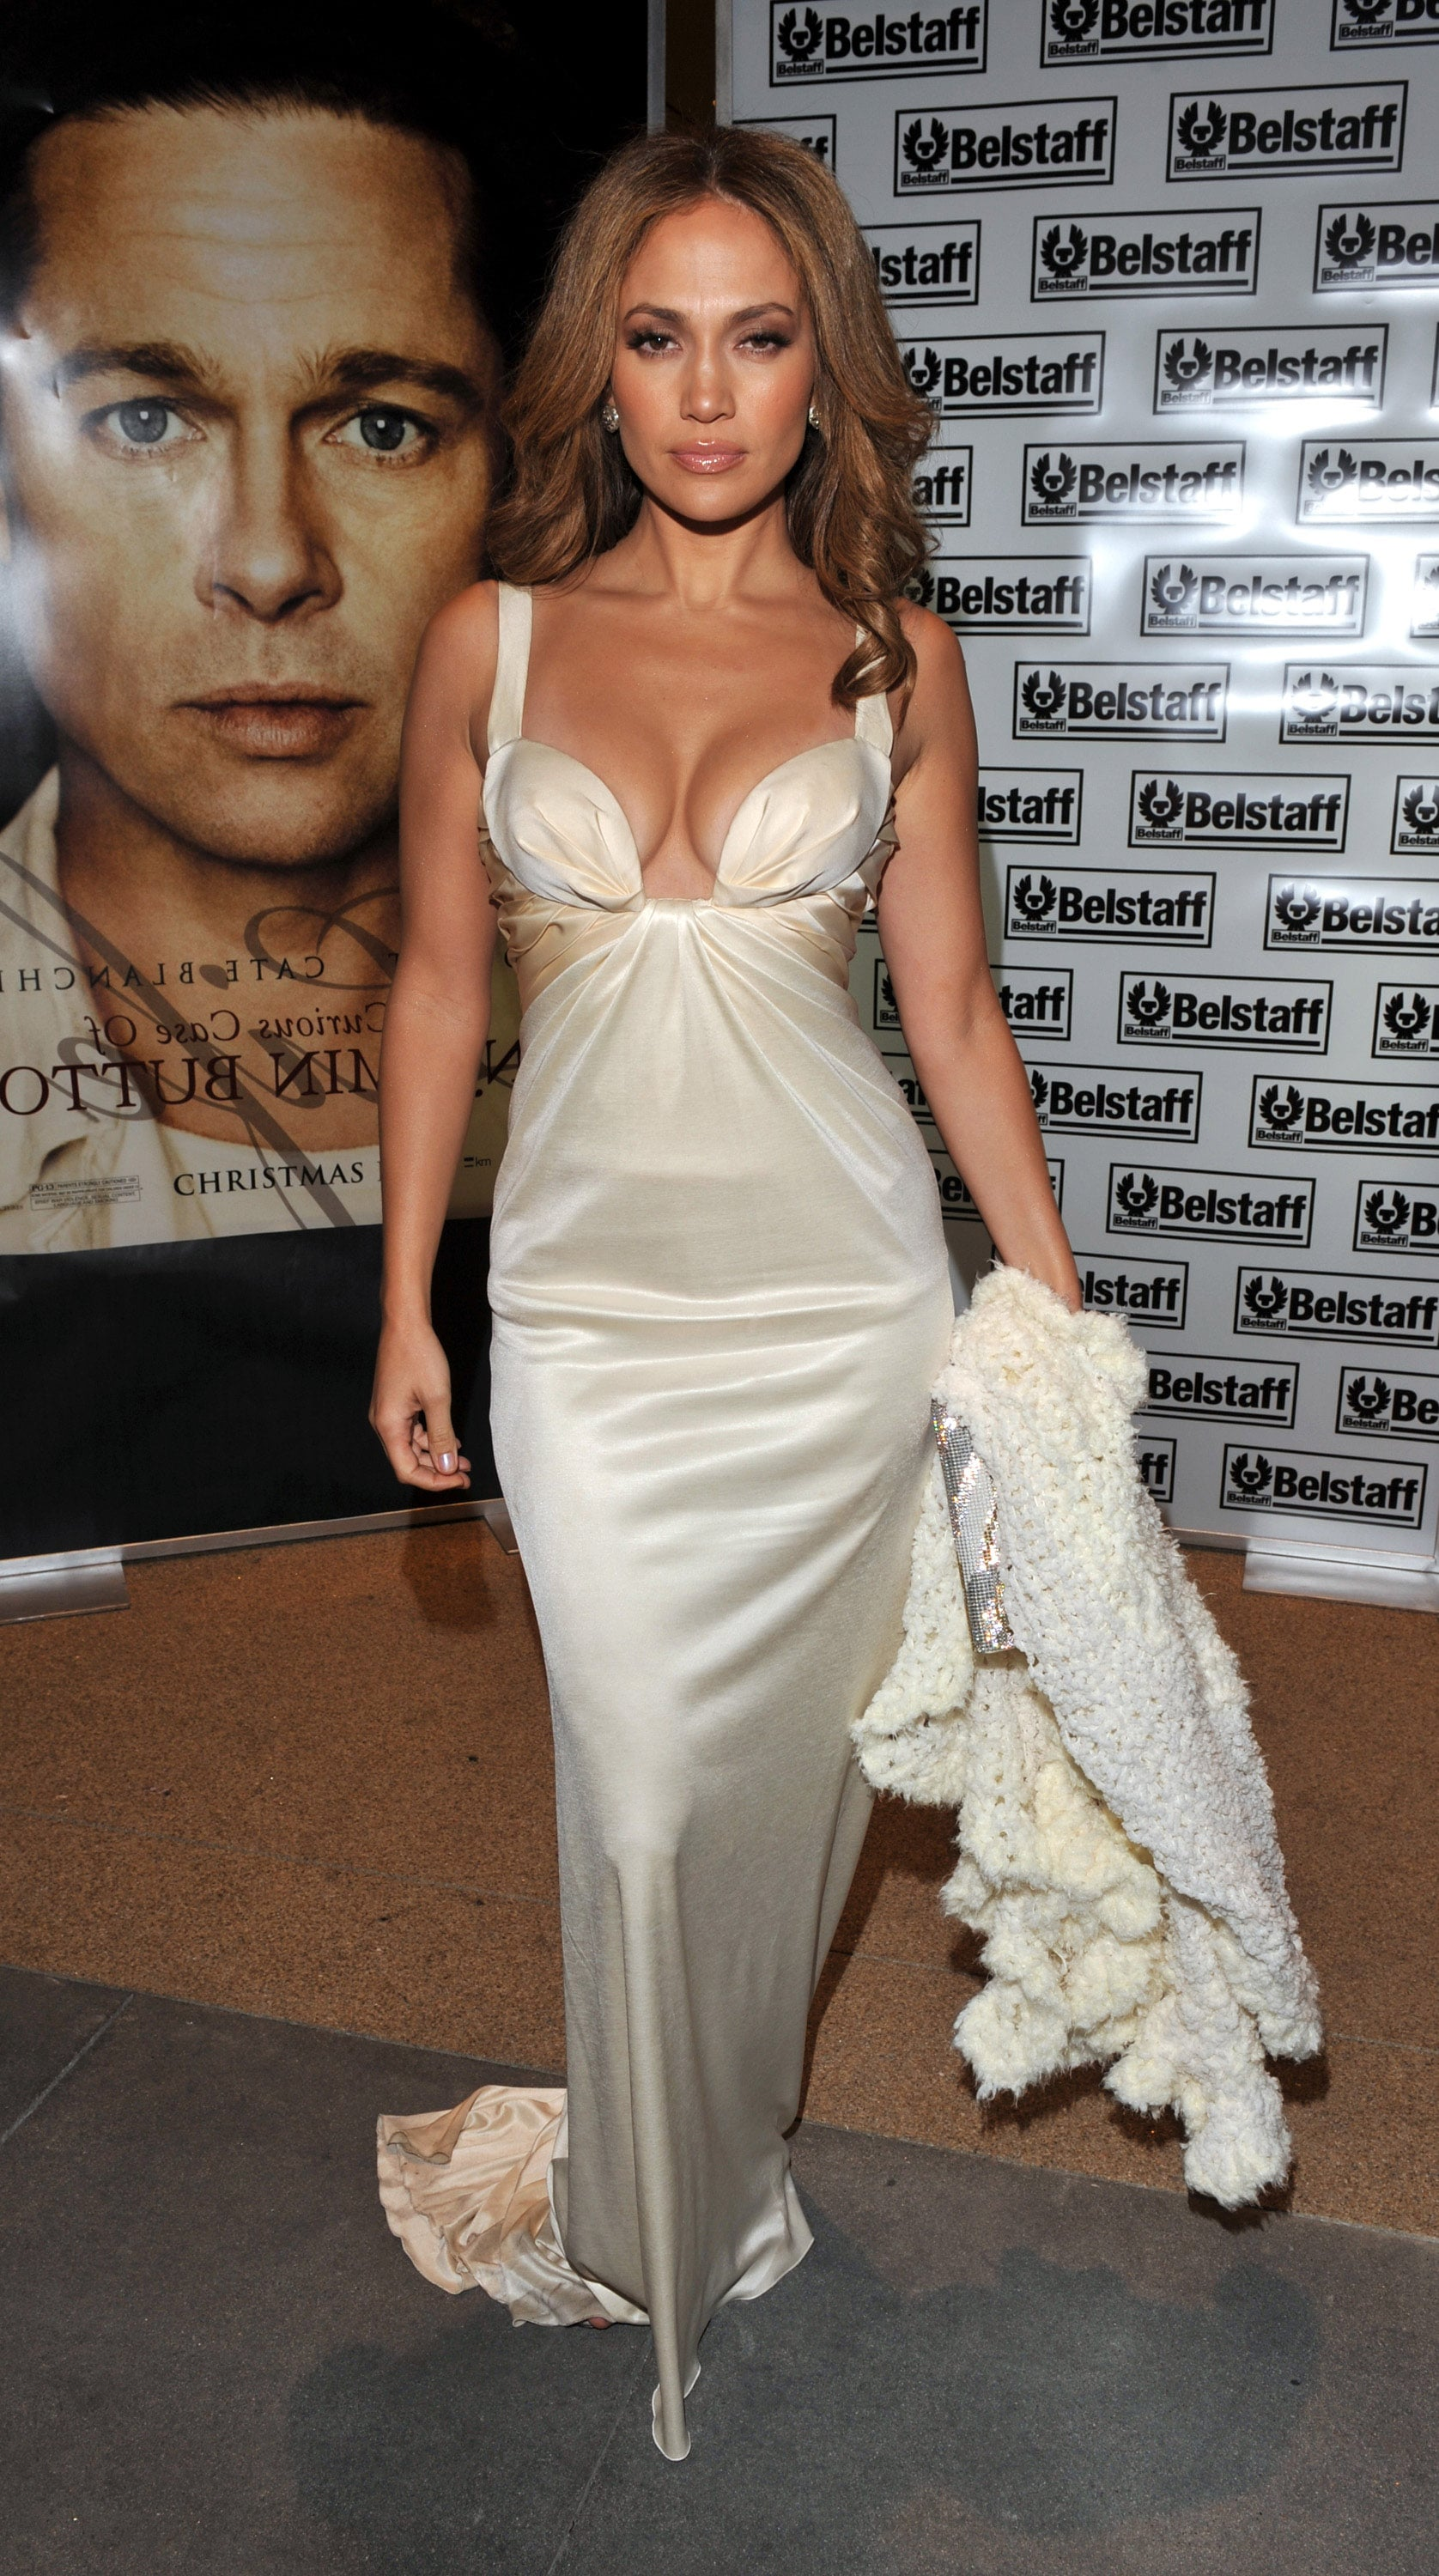 A total bombshell moment for a film premiere in '08.